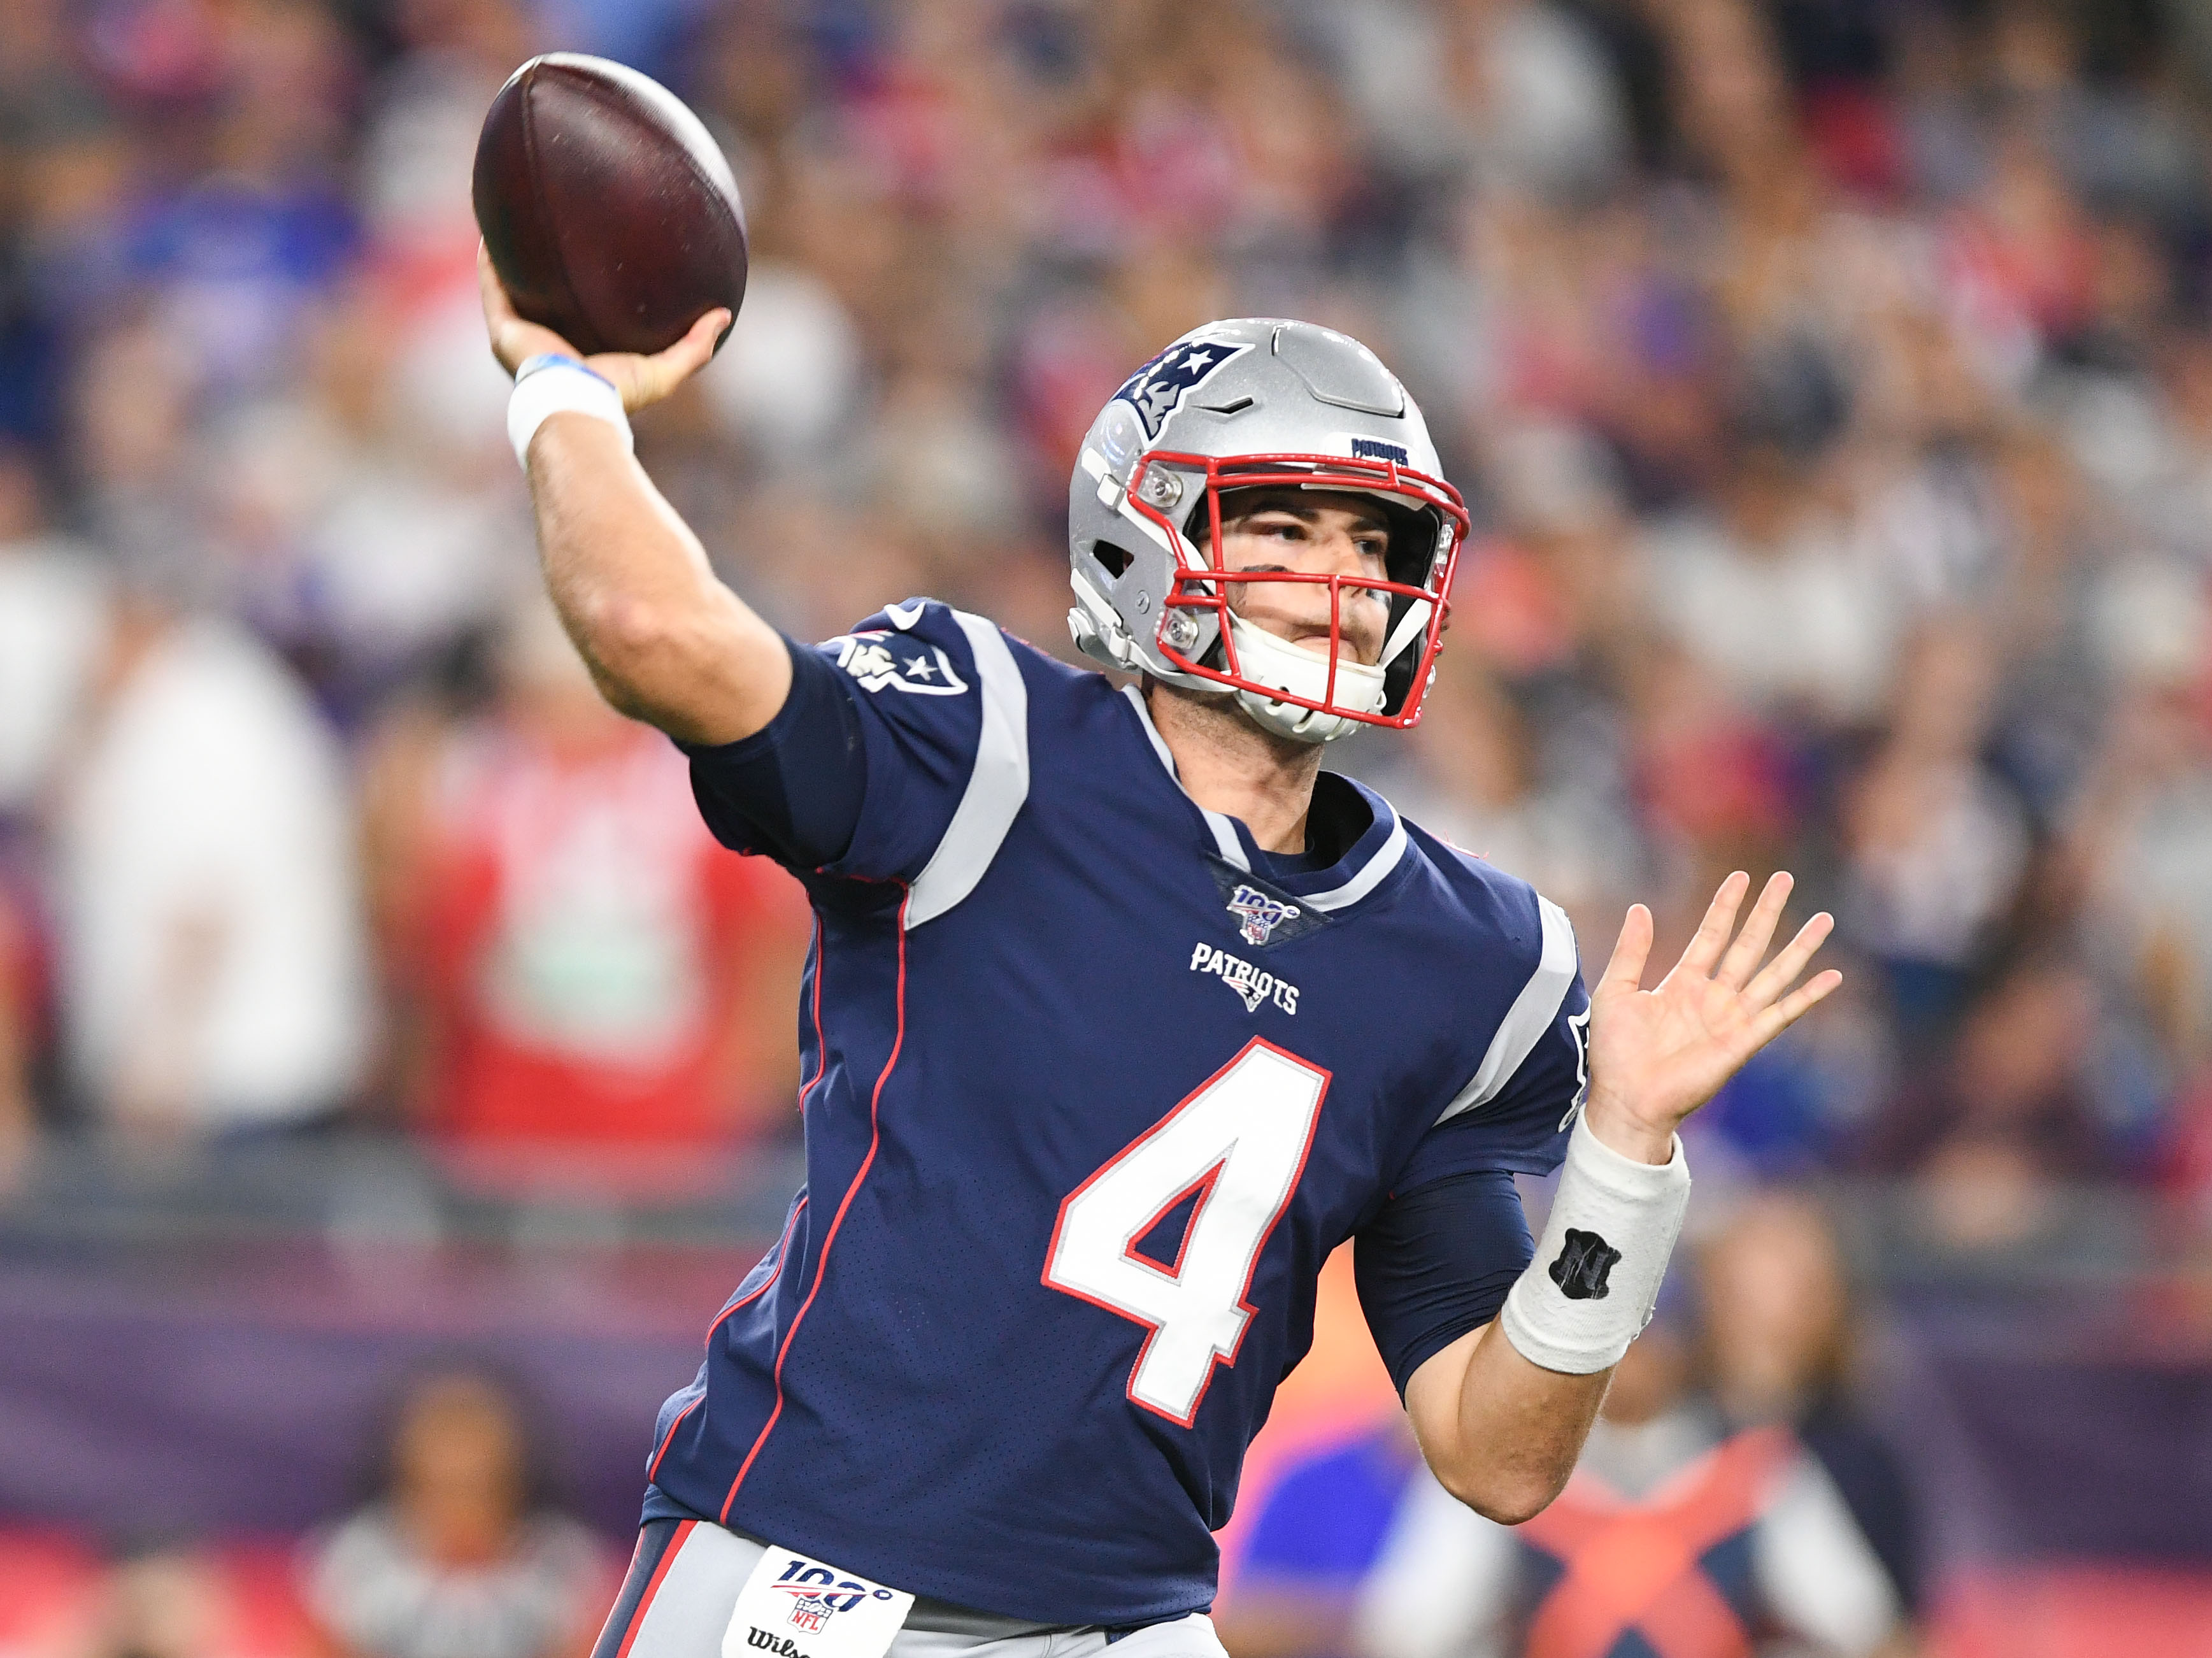 AFC East coach believes Patriots will start Jarrett Stidham over Cam Newton